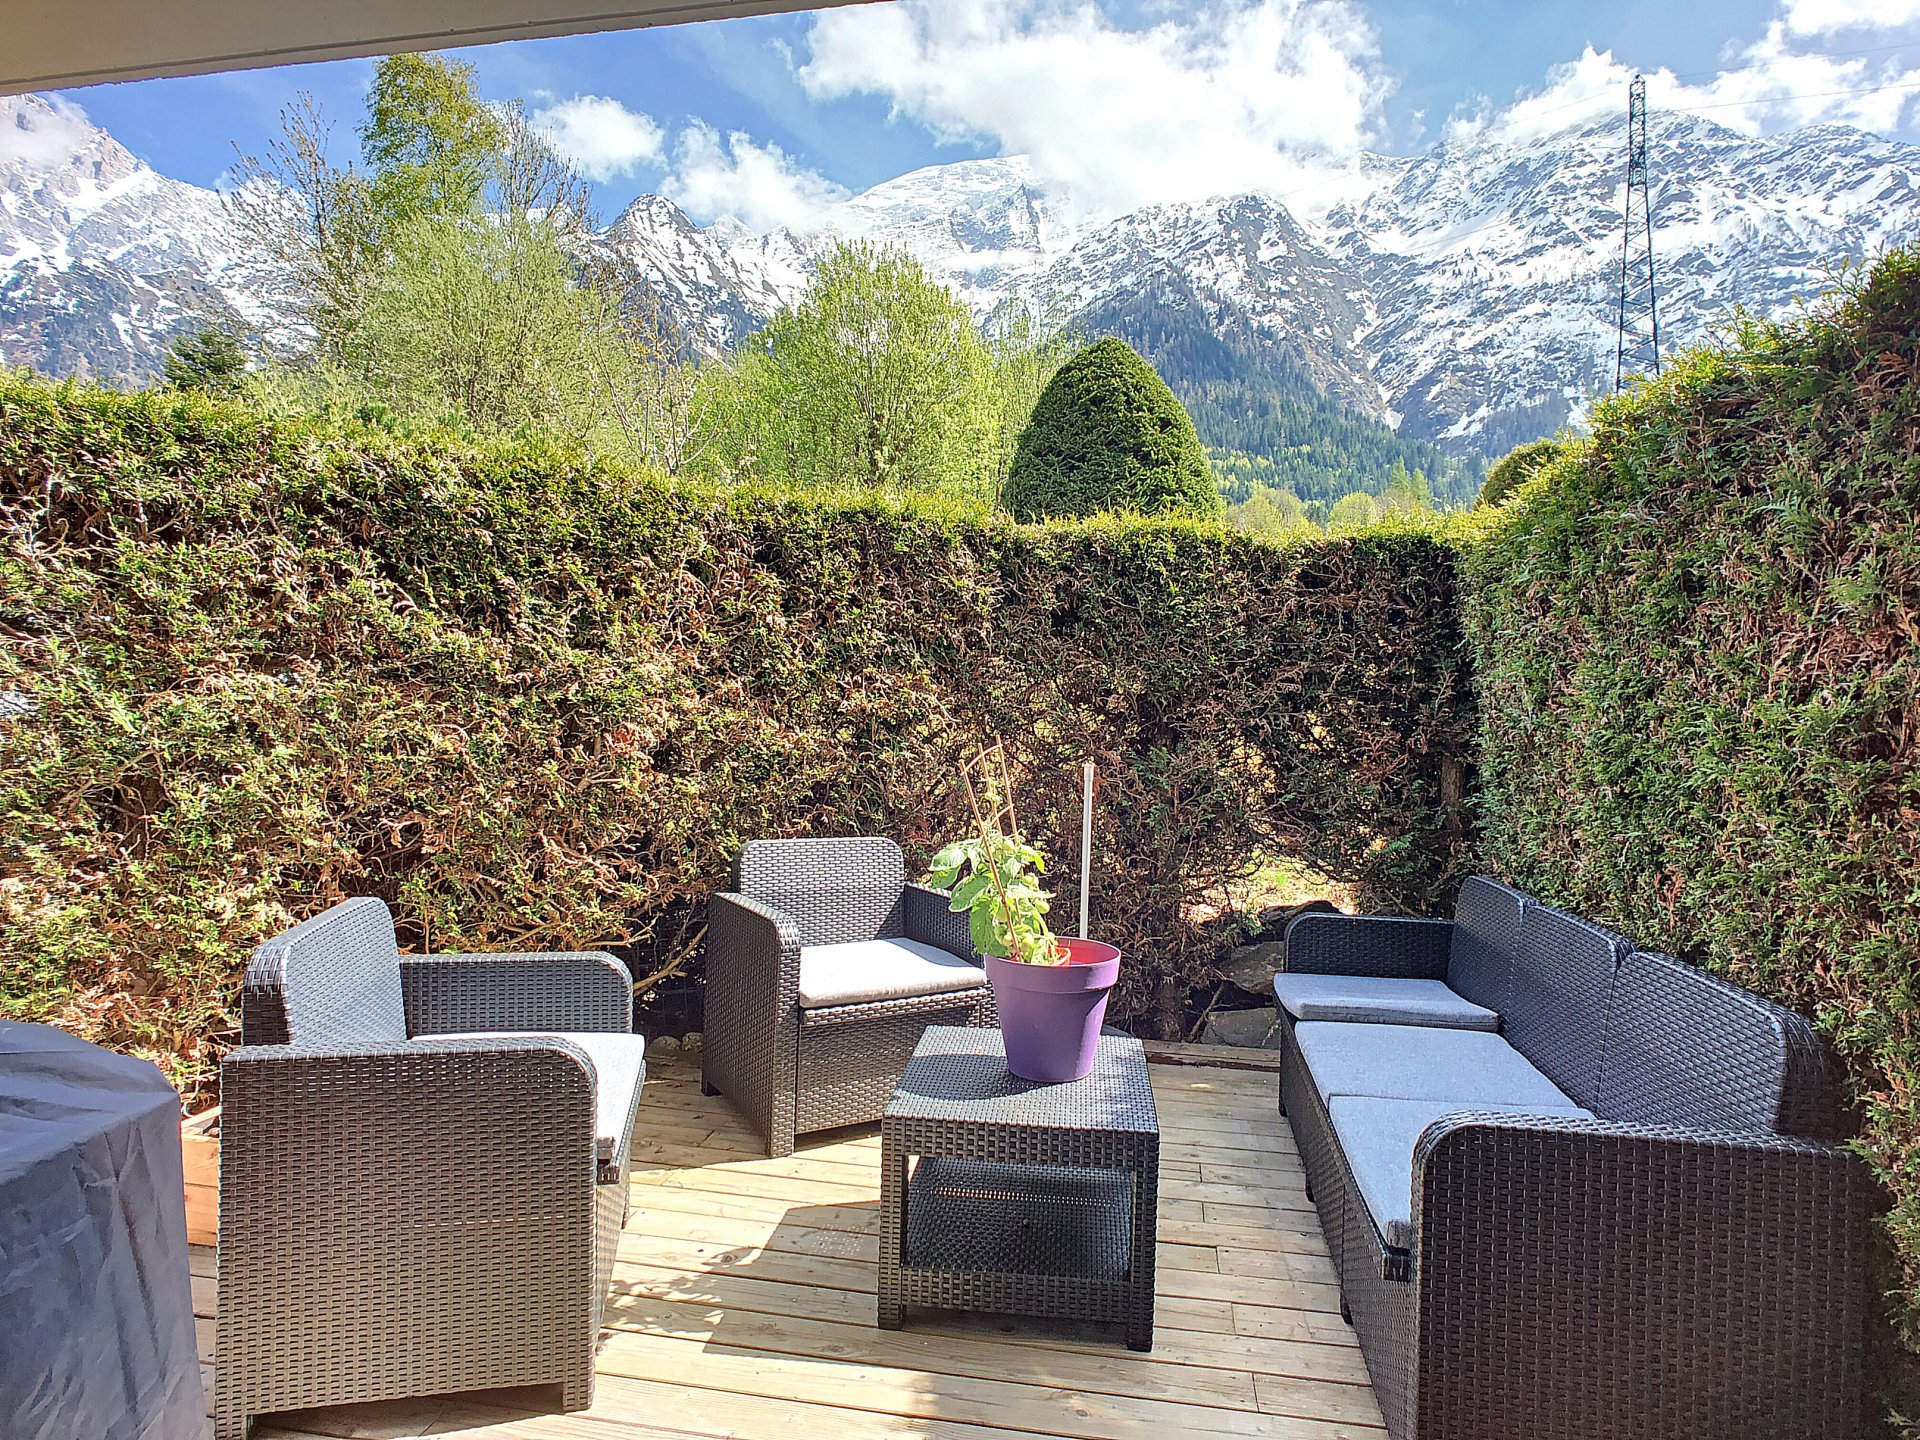 Nice terrace with view on the massif